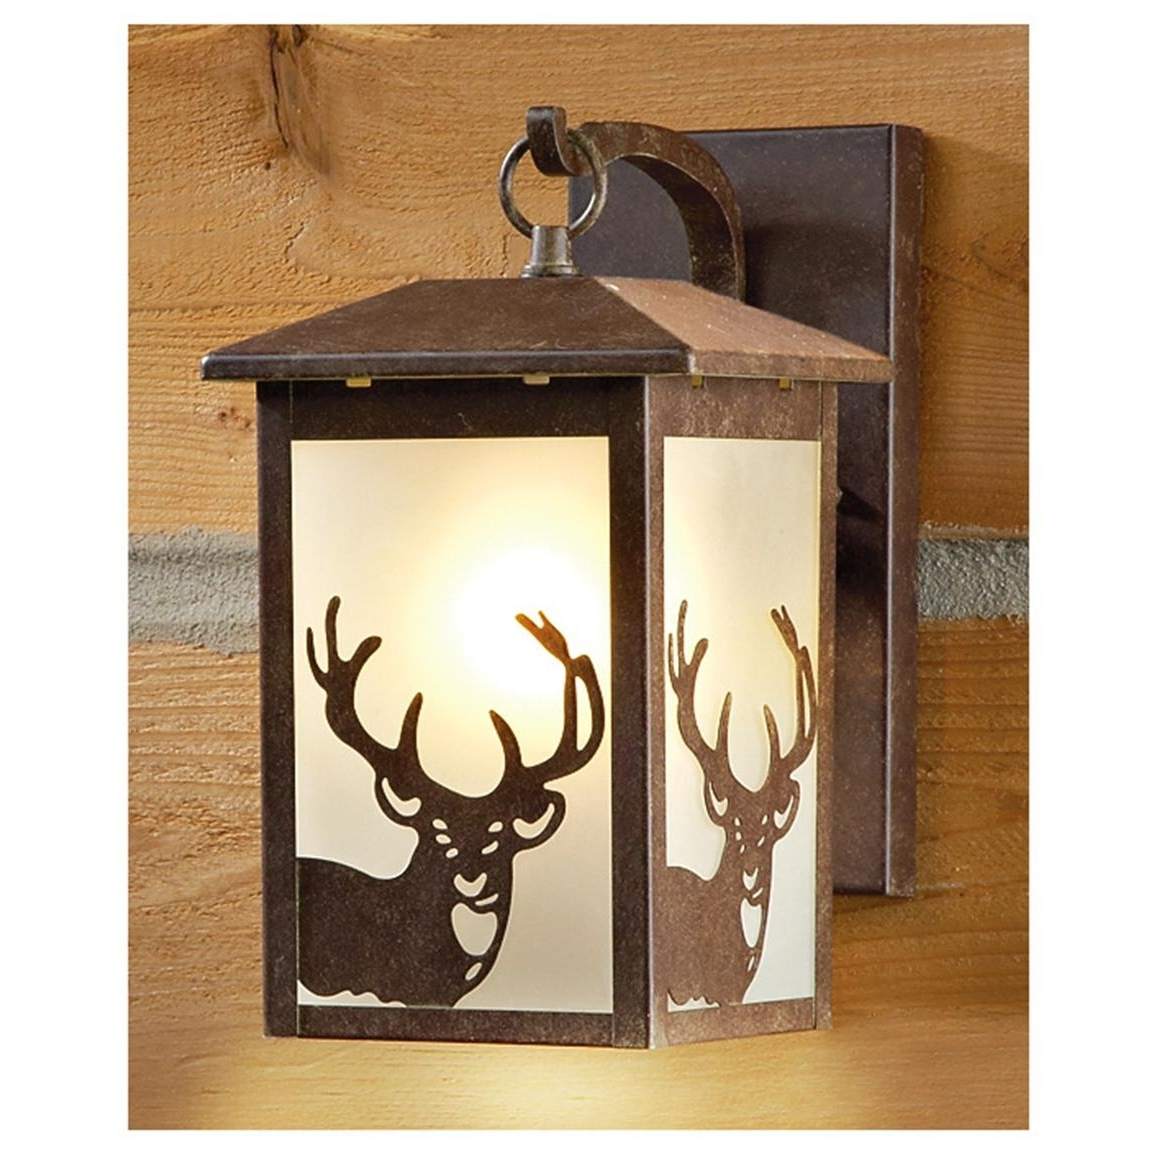 Rustic Porch Lights Amazing Of Outdoor Lighting 1 Wall Sconce New Regarding Favorite Outdoor Wall Porch Lights (View 6 of 20)